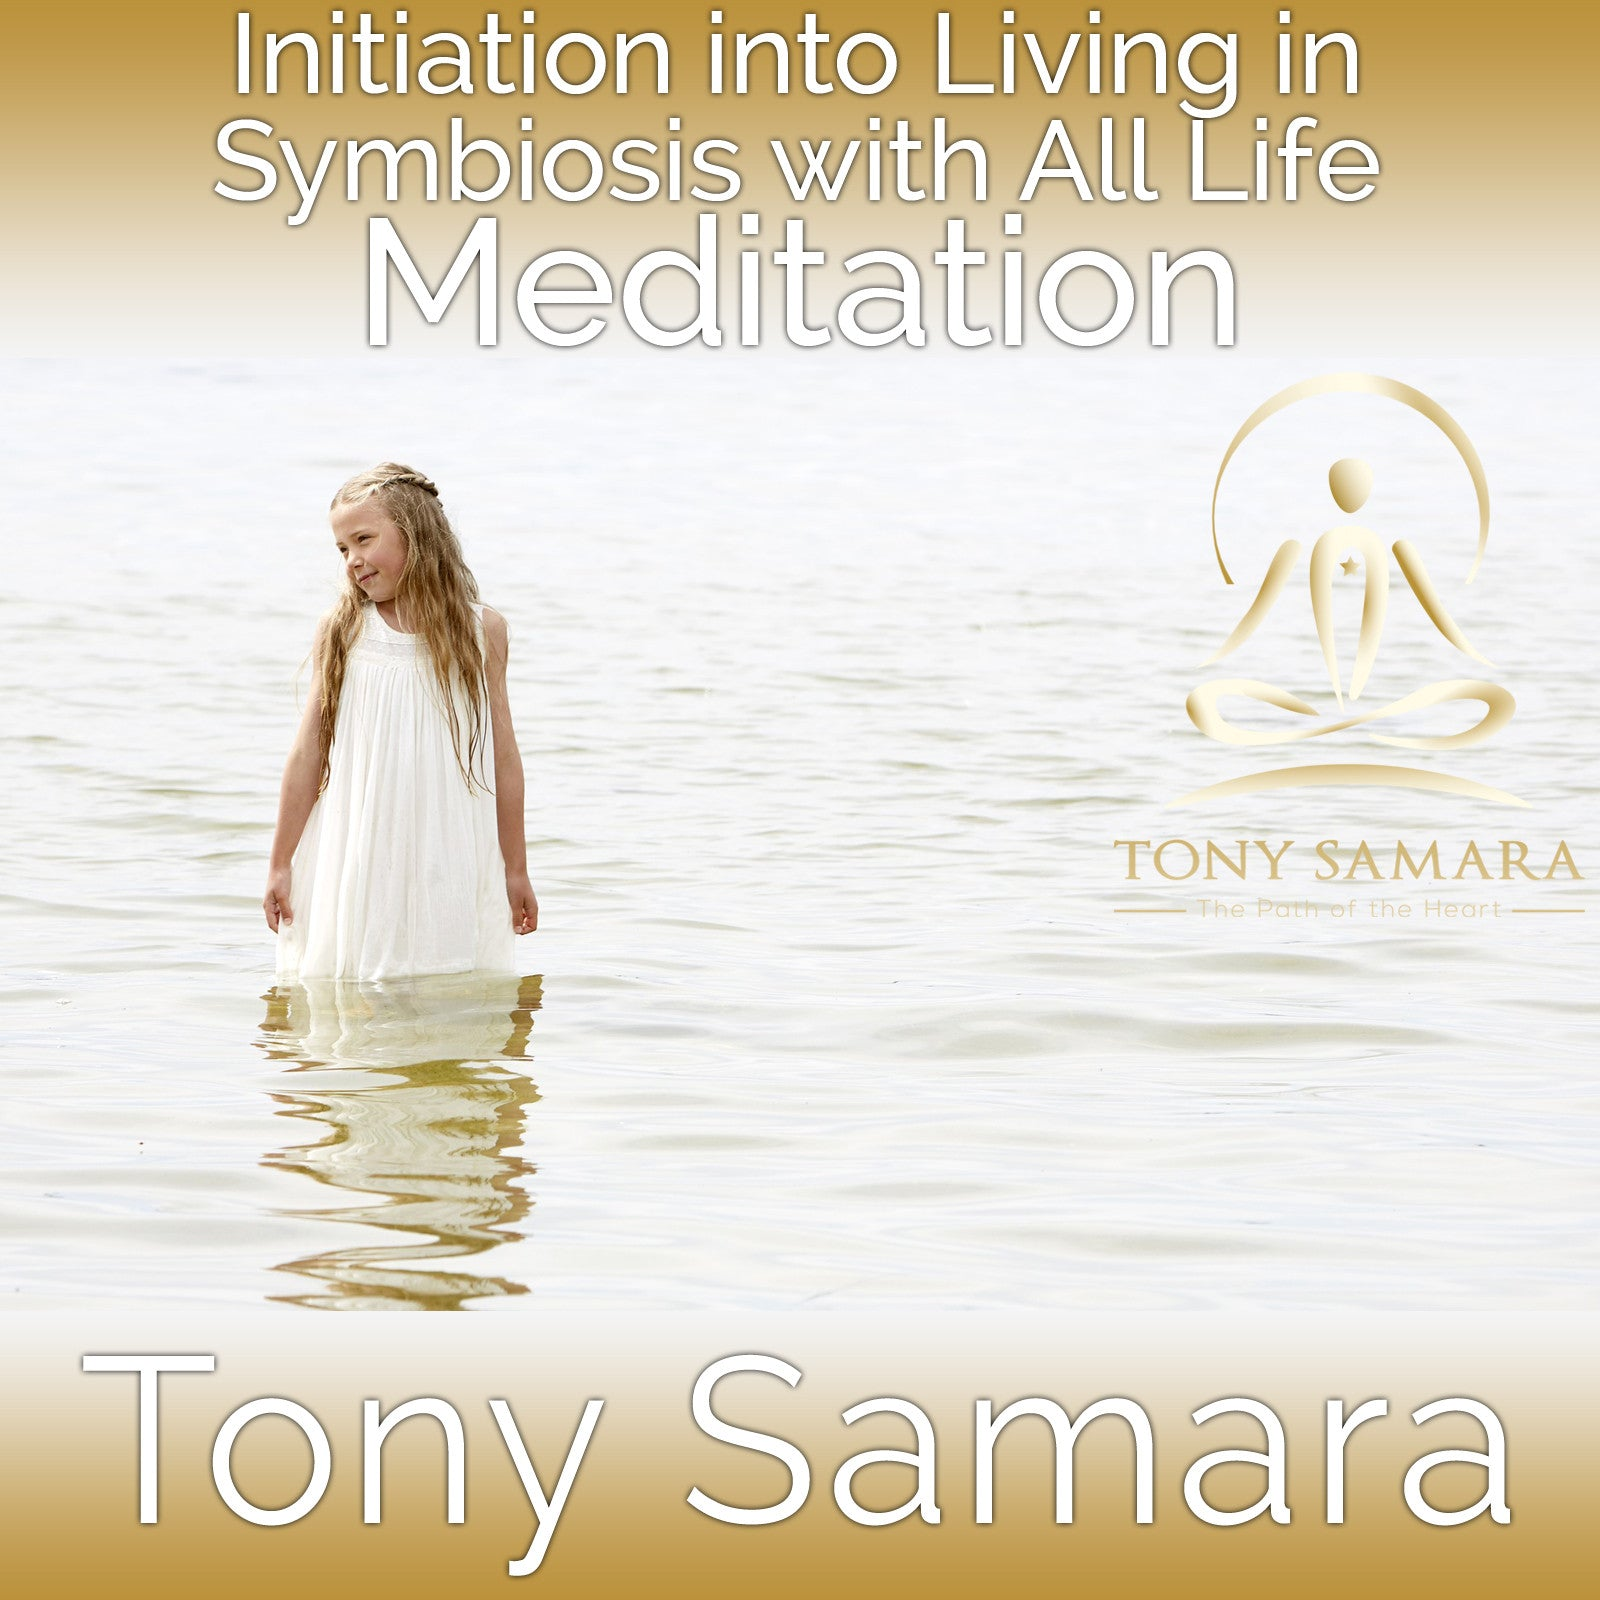 Initiation into Living in Symbiosis with All Life Meditation (MP3 Audio Download) - Tony Samara Meditation